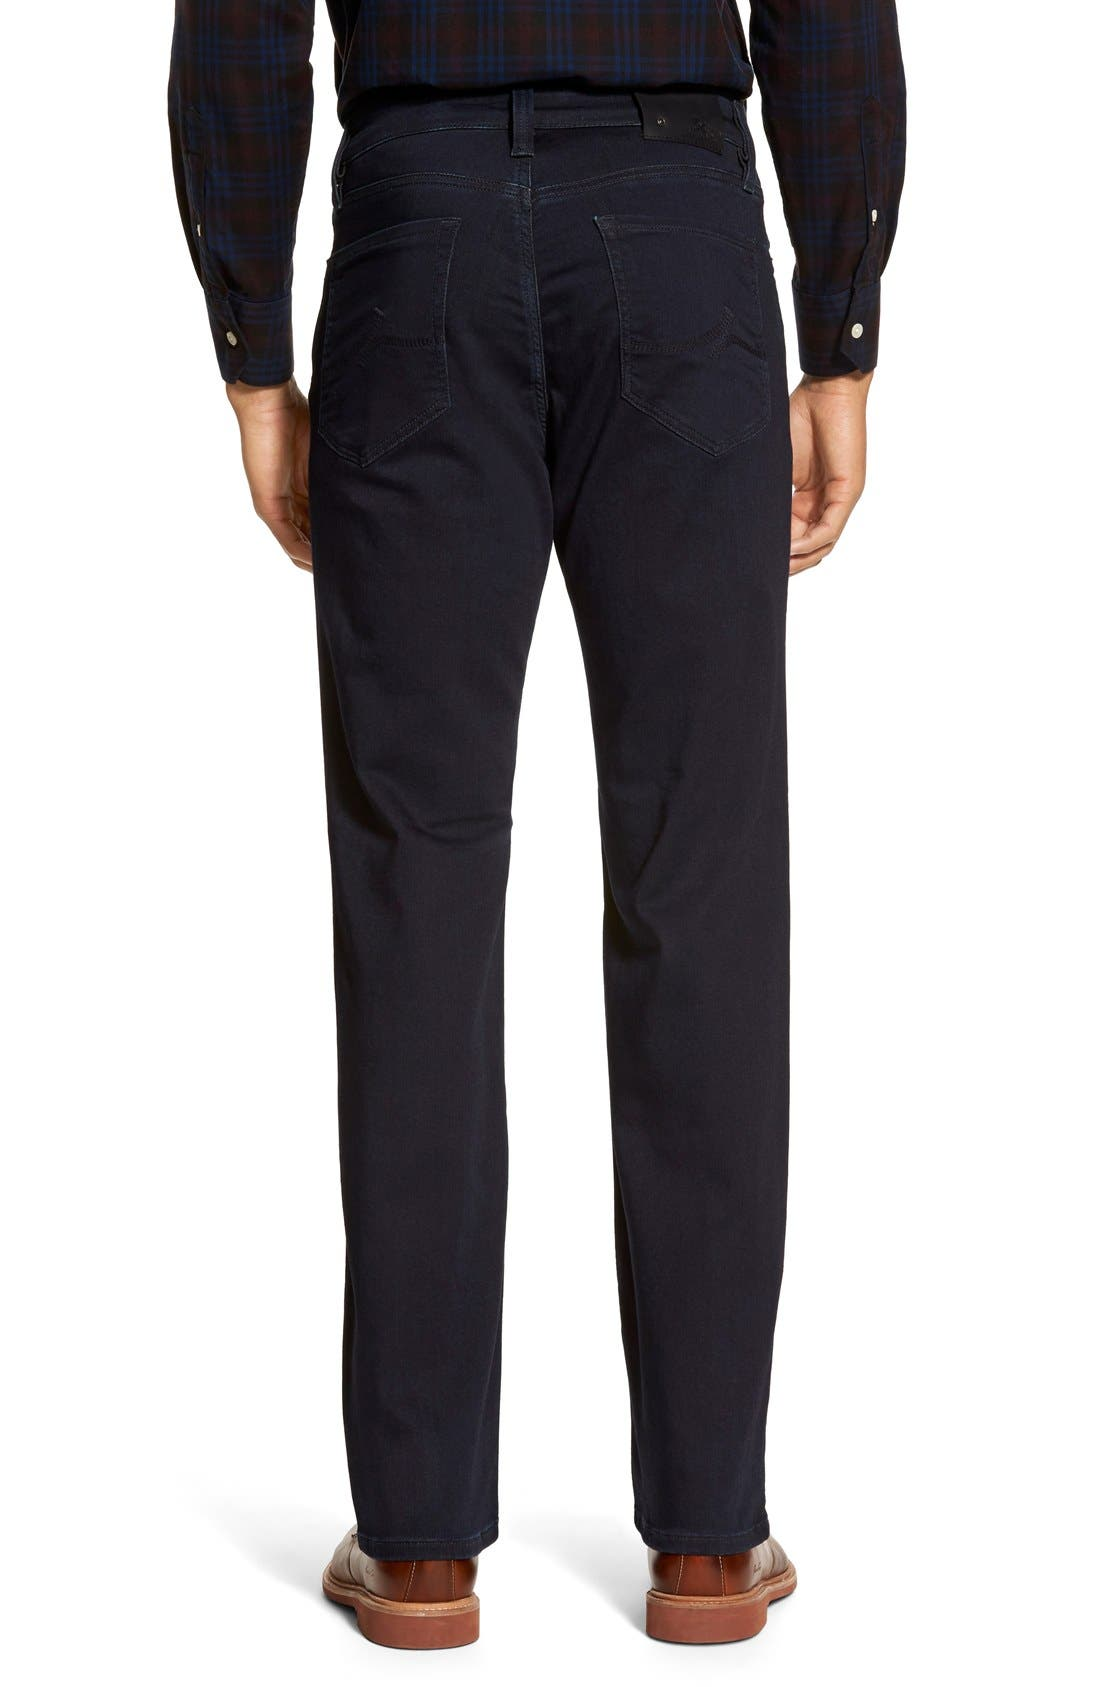 'Charisma' Relaxed Fit Jeans,                             Alternate thumbnail 4, color,                             RINSE SPORTY